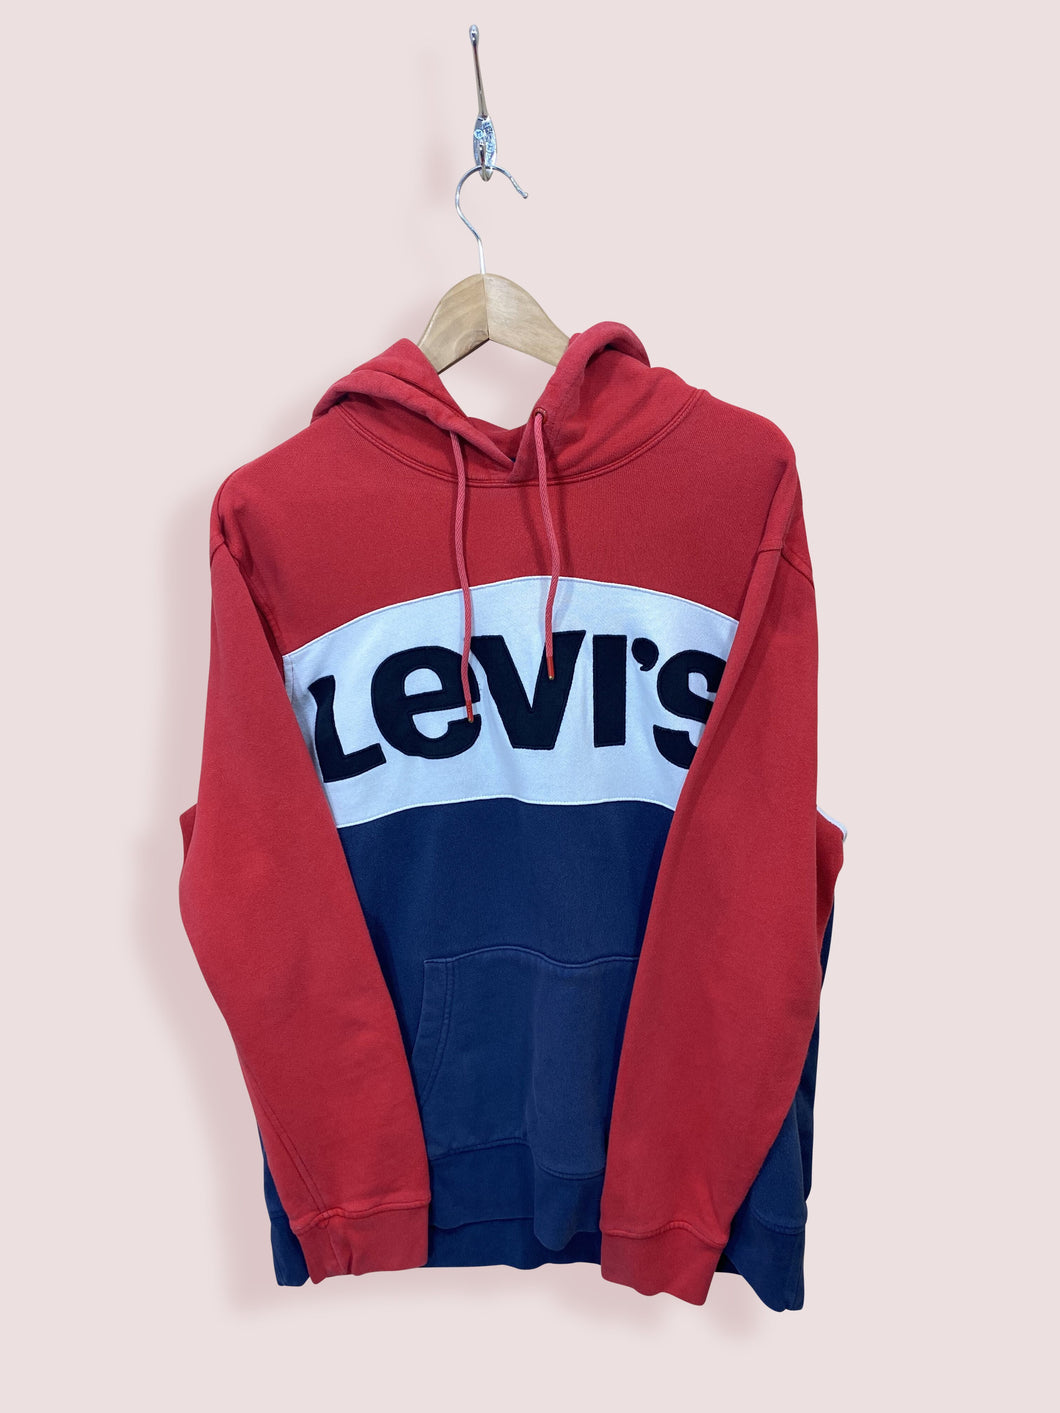 XL Vintage Levis Spell Out Hoodie Red White Navy - DURT